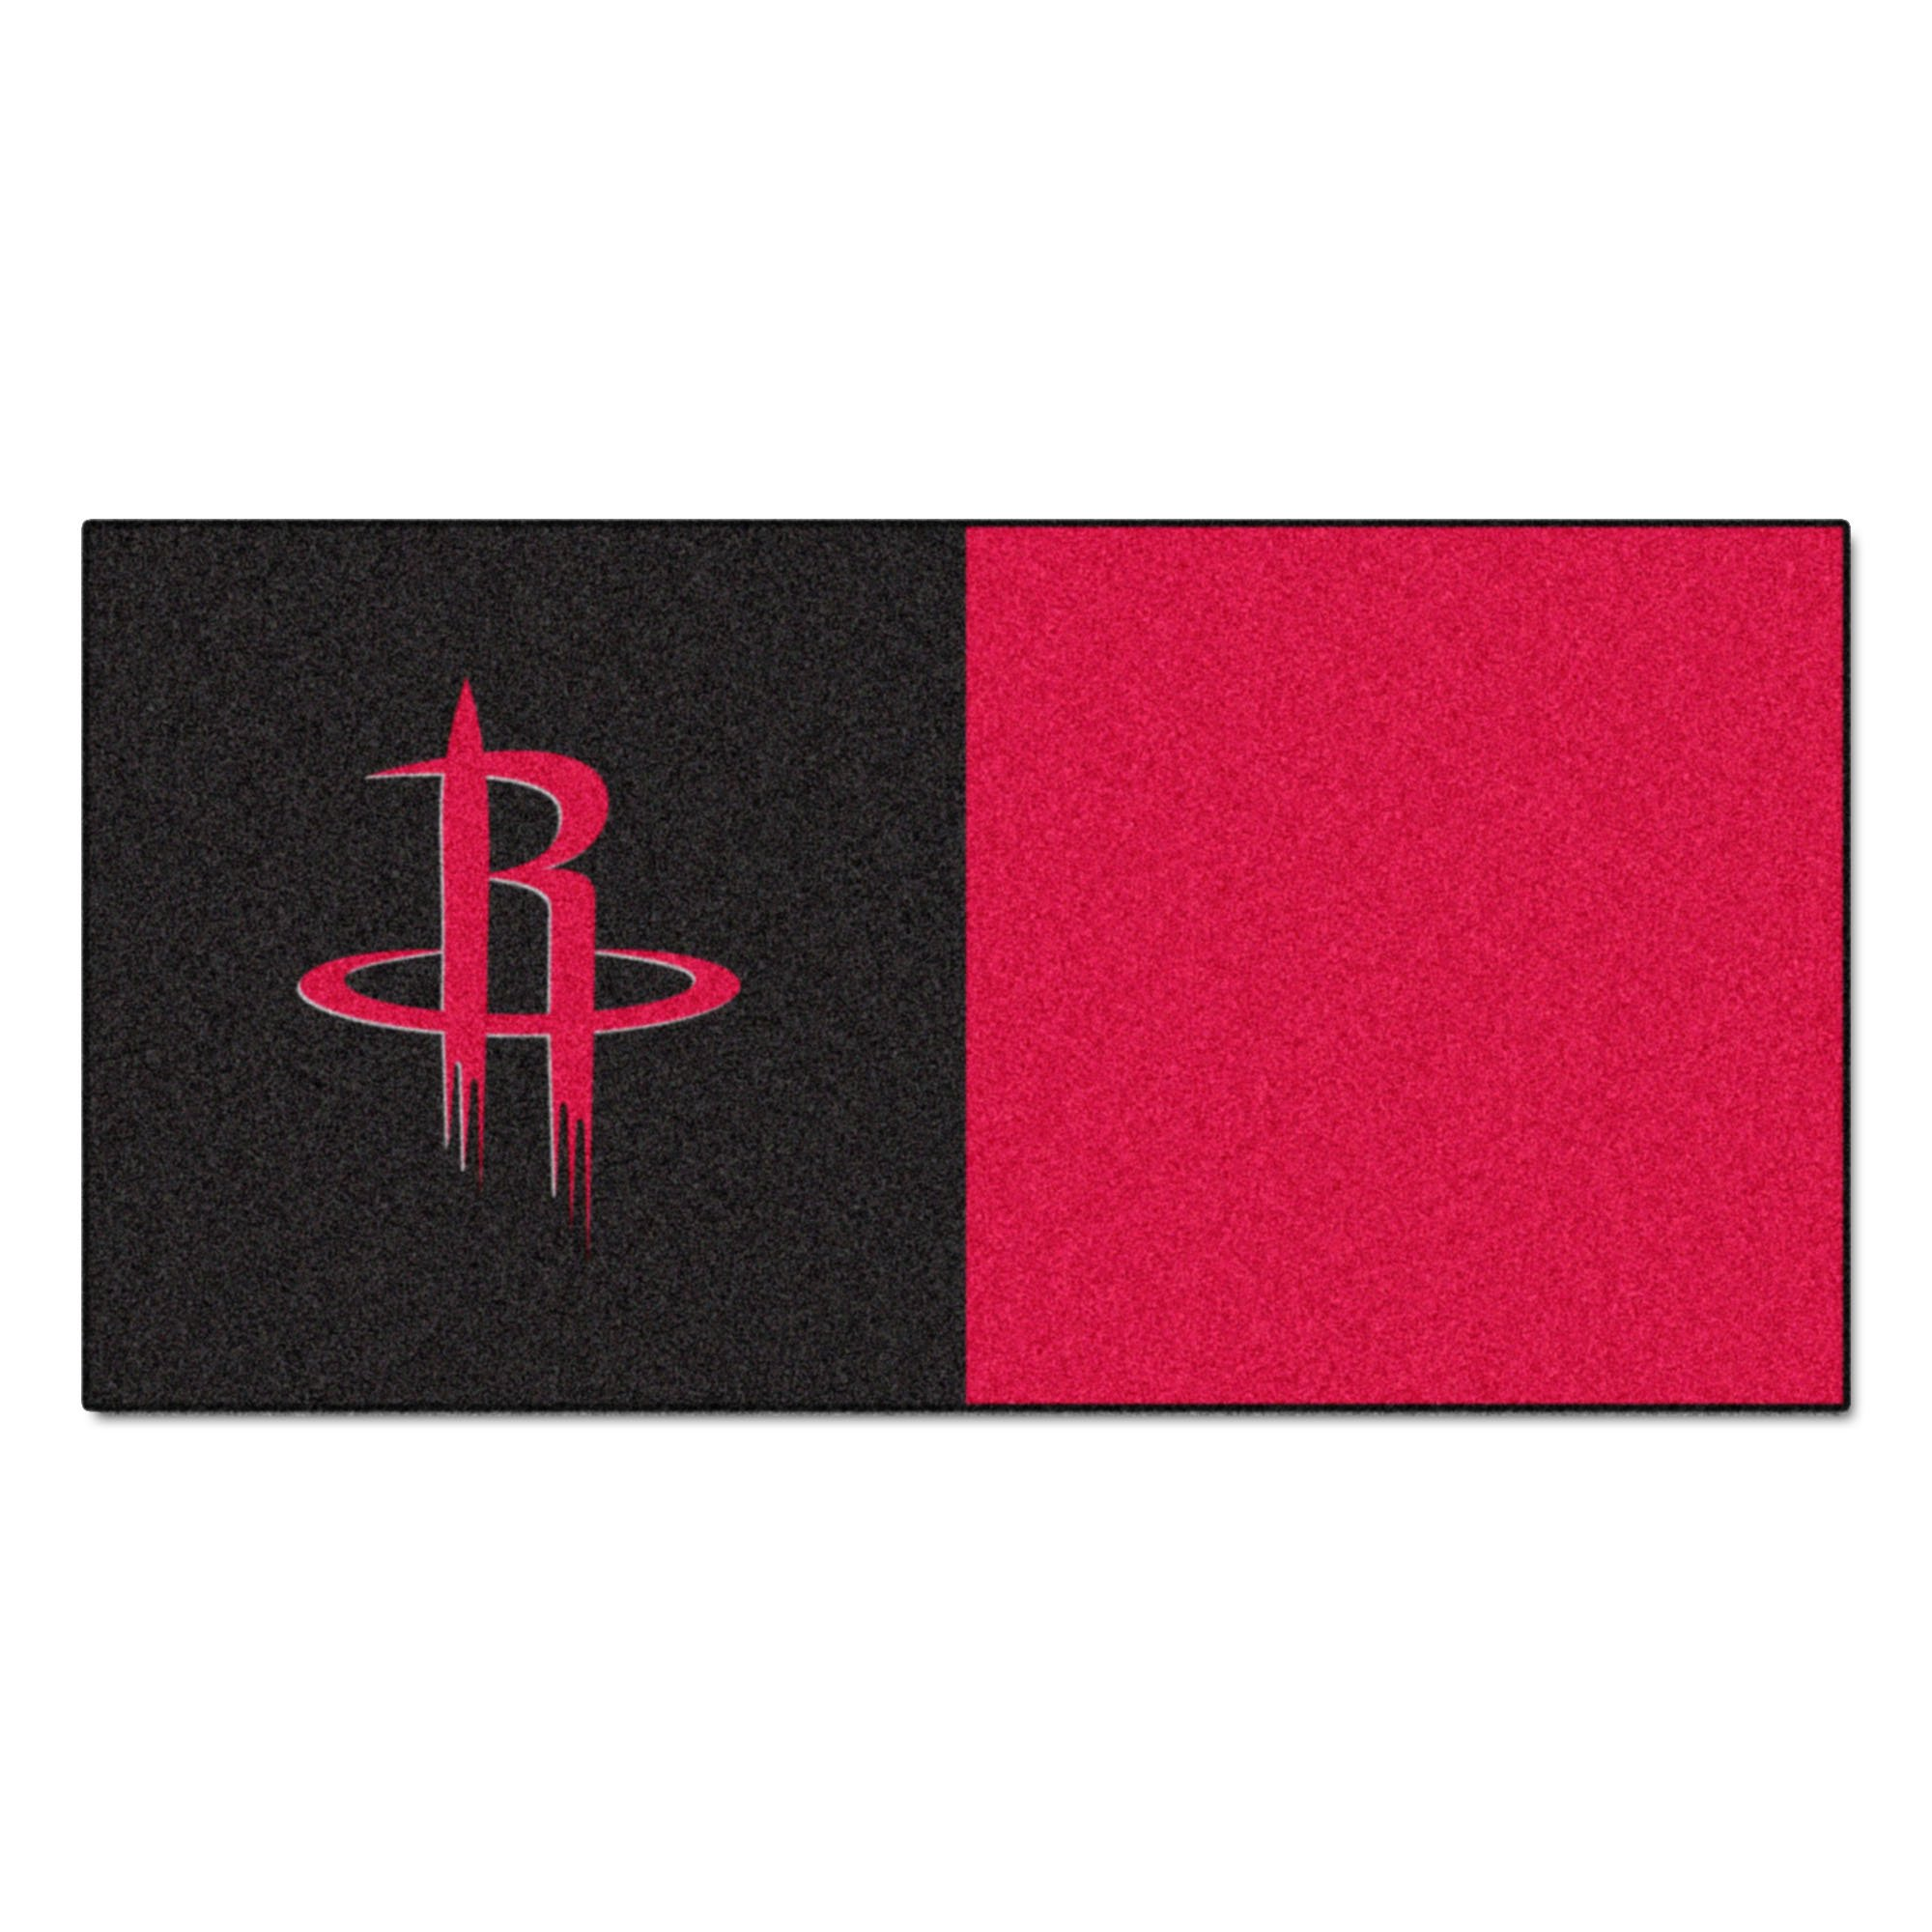 FANMATS NBA Houston Rockets Nylon Face Team Carpet Tiles